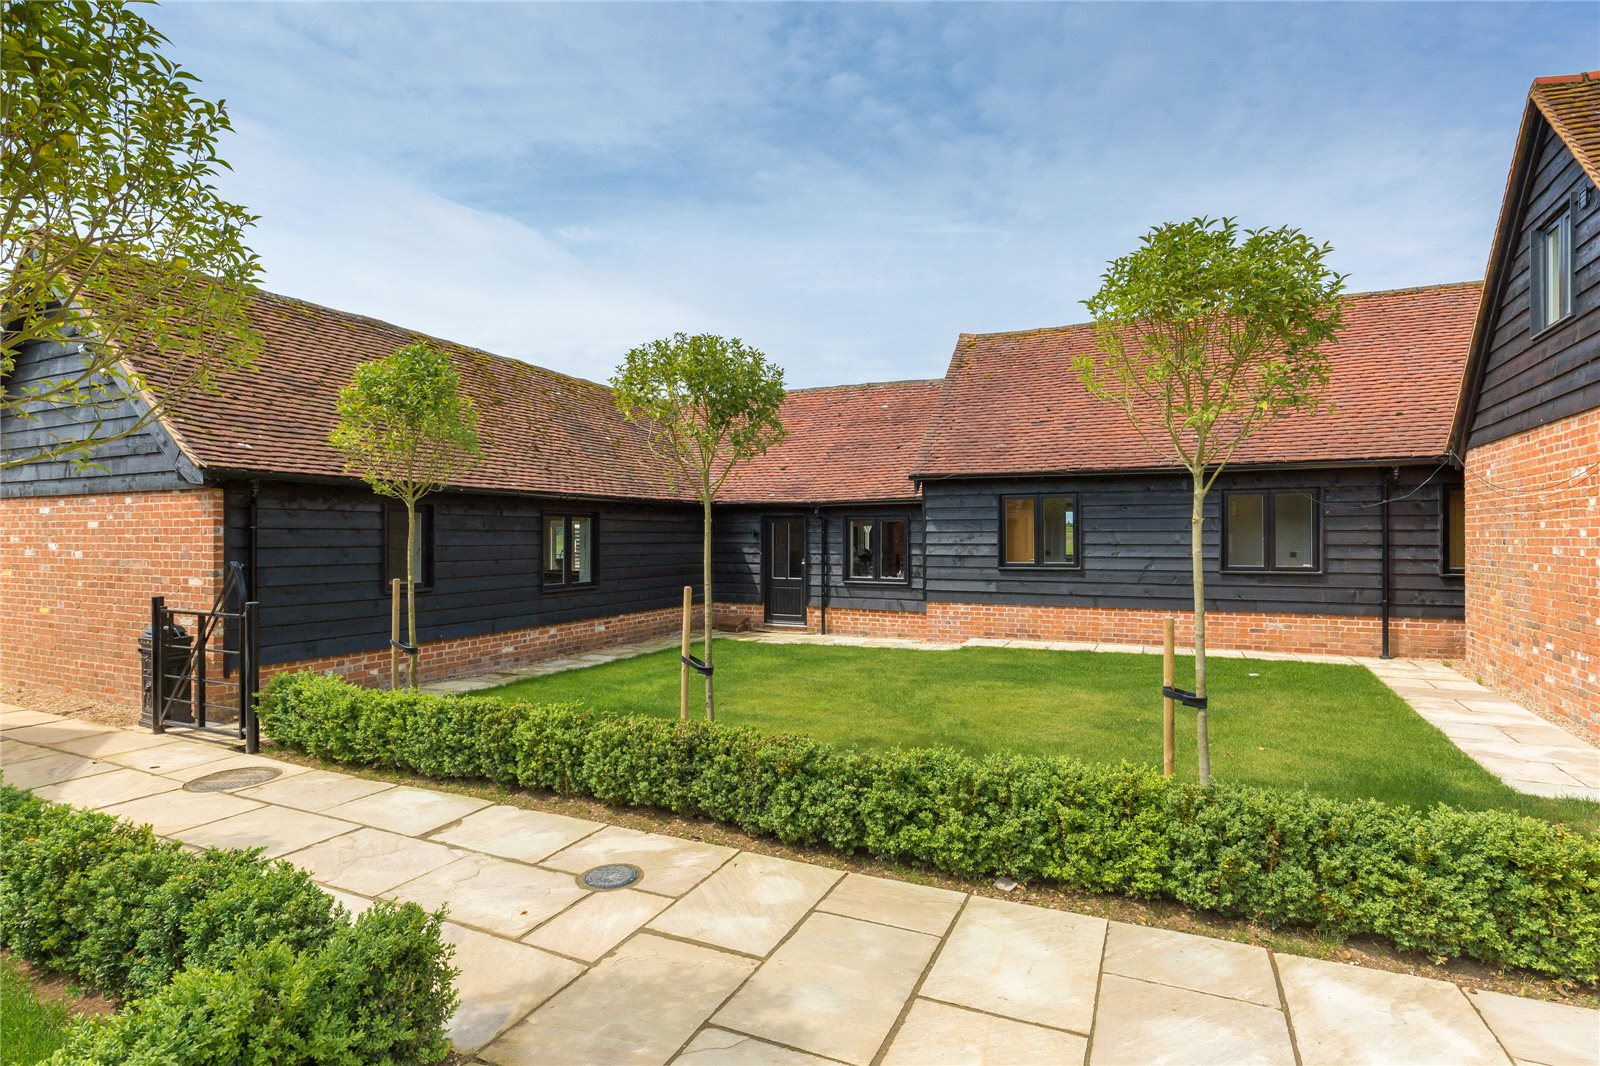 Additional photo for property listing at Great Green Street Farm, Green Street, Chorleywood, Hertfordshire, WD3 Chorleywood, Αγγλια